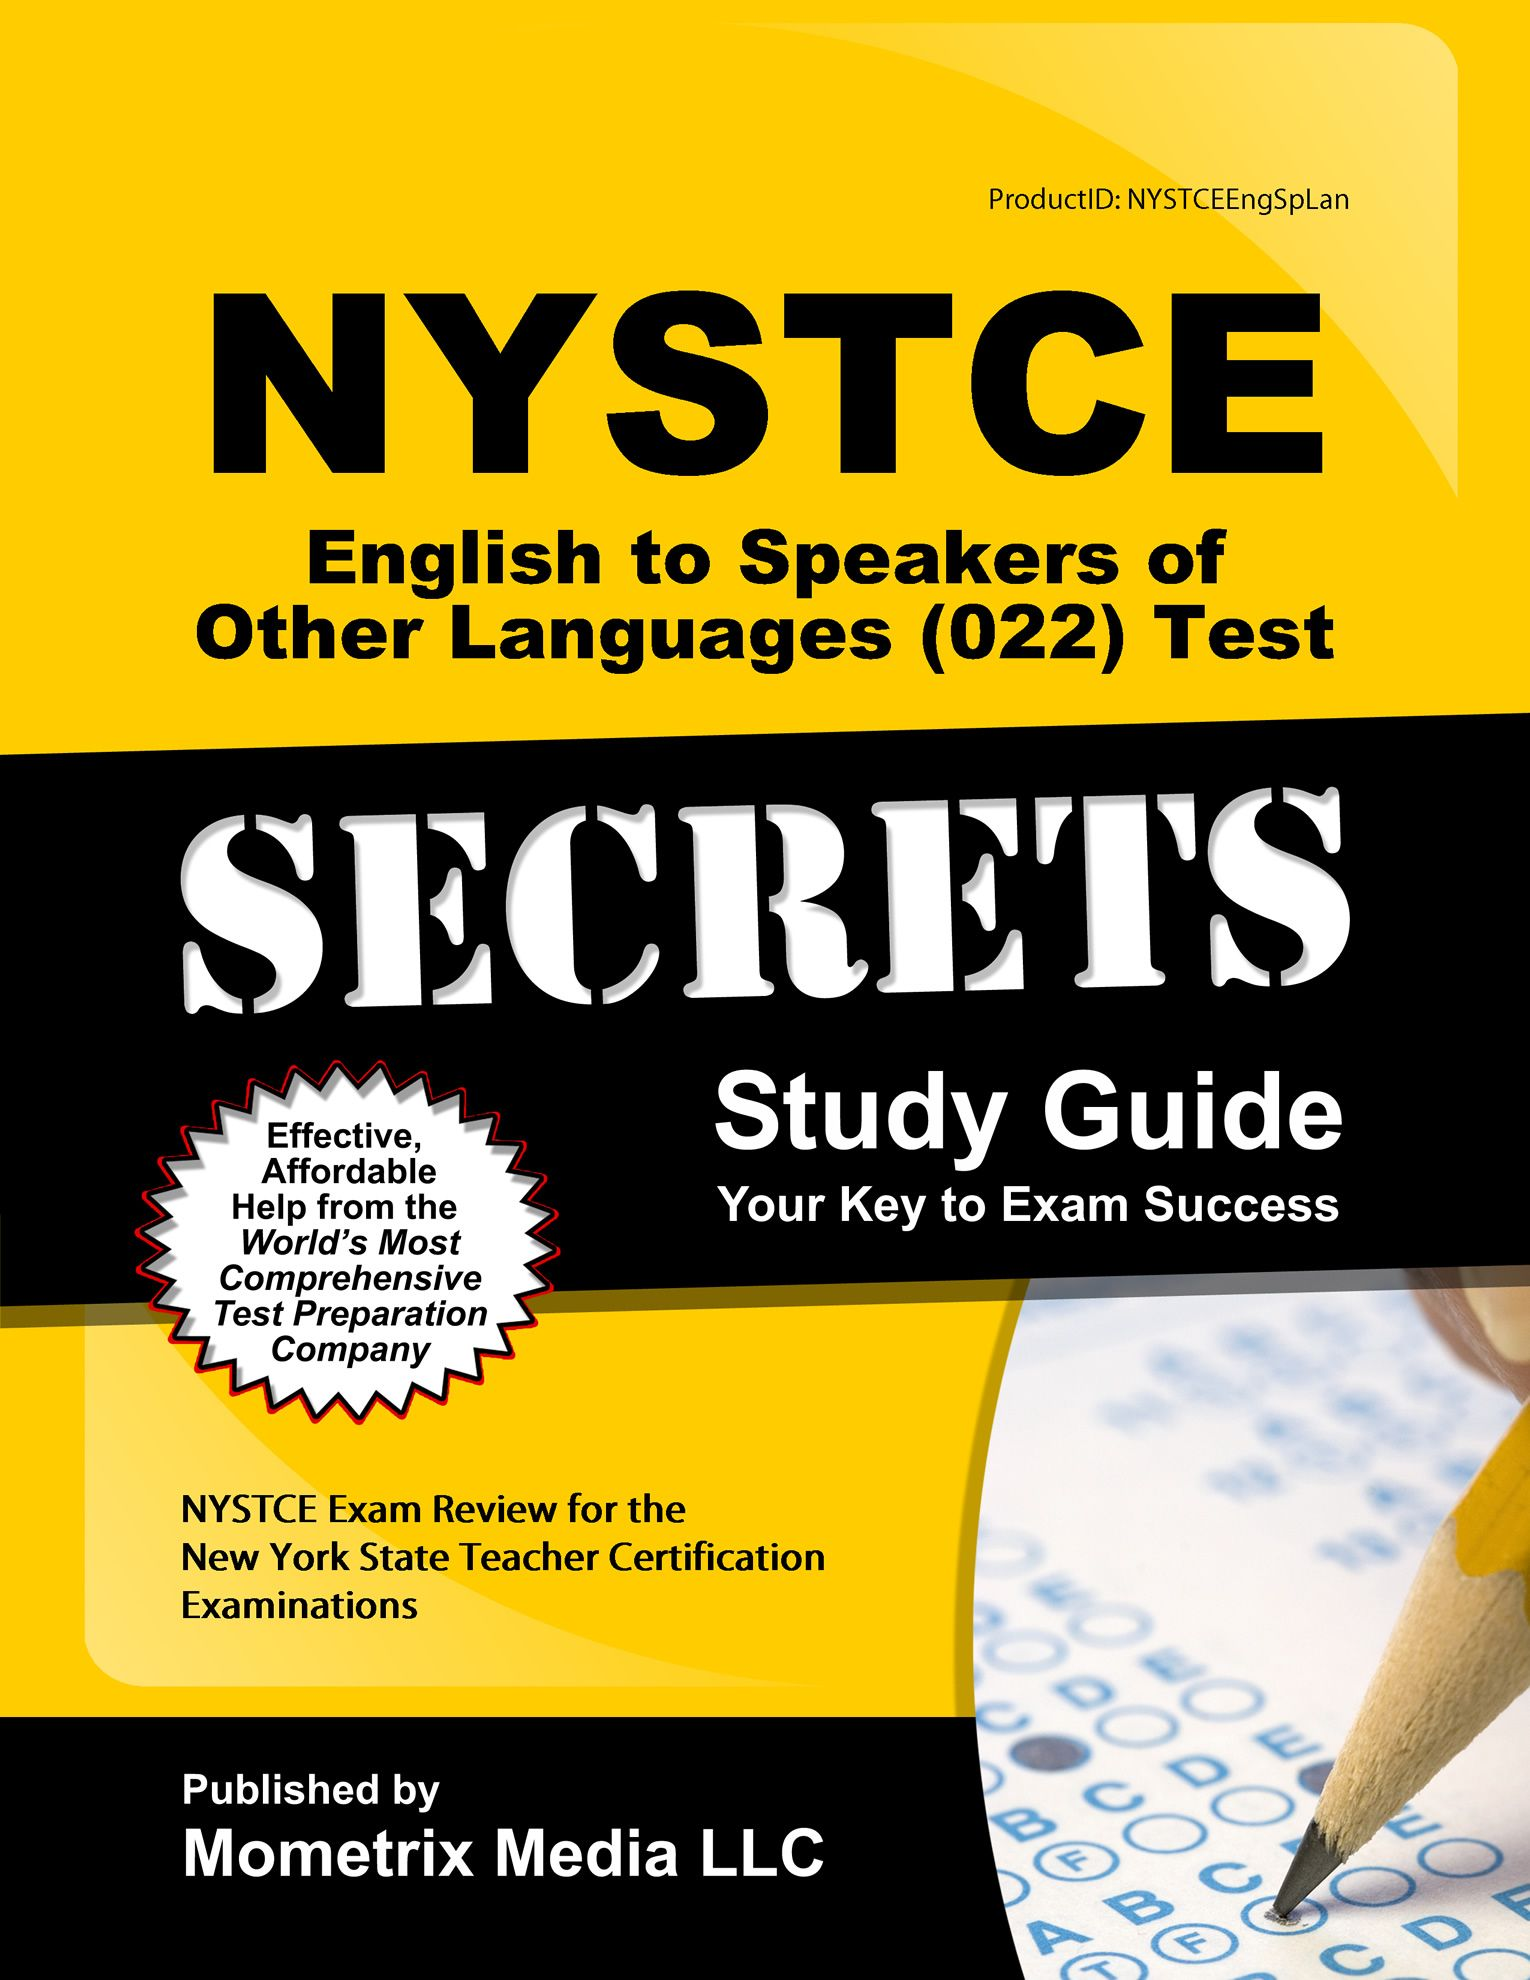 Nystce english to speakers of other languages 022 test study start preparing today with a praxis ii middle school study guide that includes praxis ii middle school practice test questions raise your praxis ii middle 1betcityfo Gallery